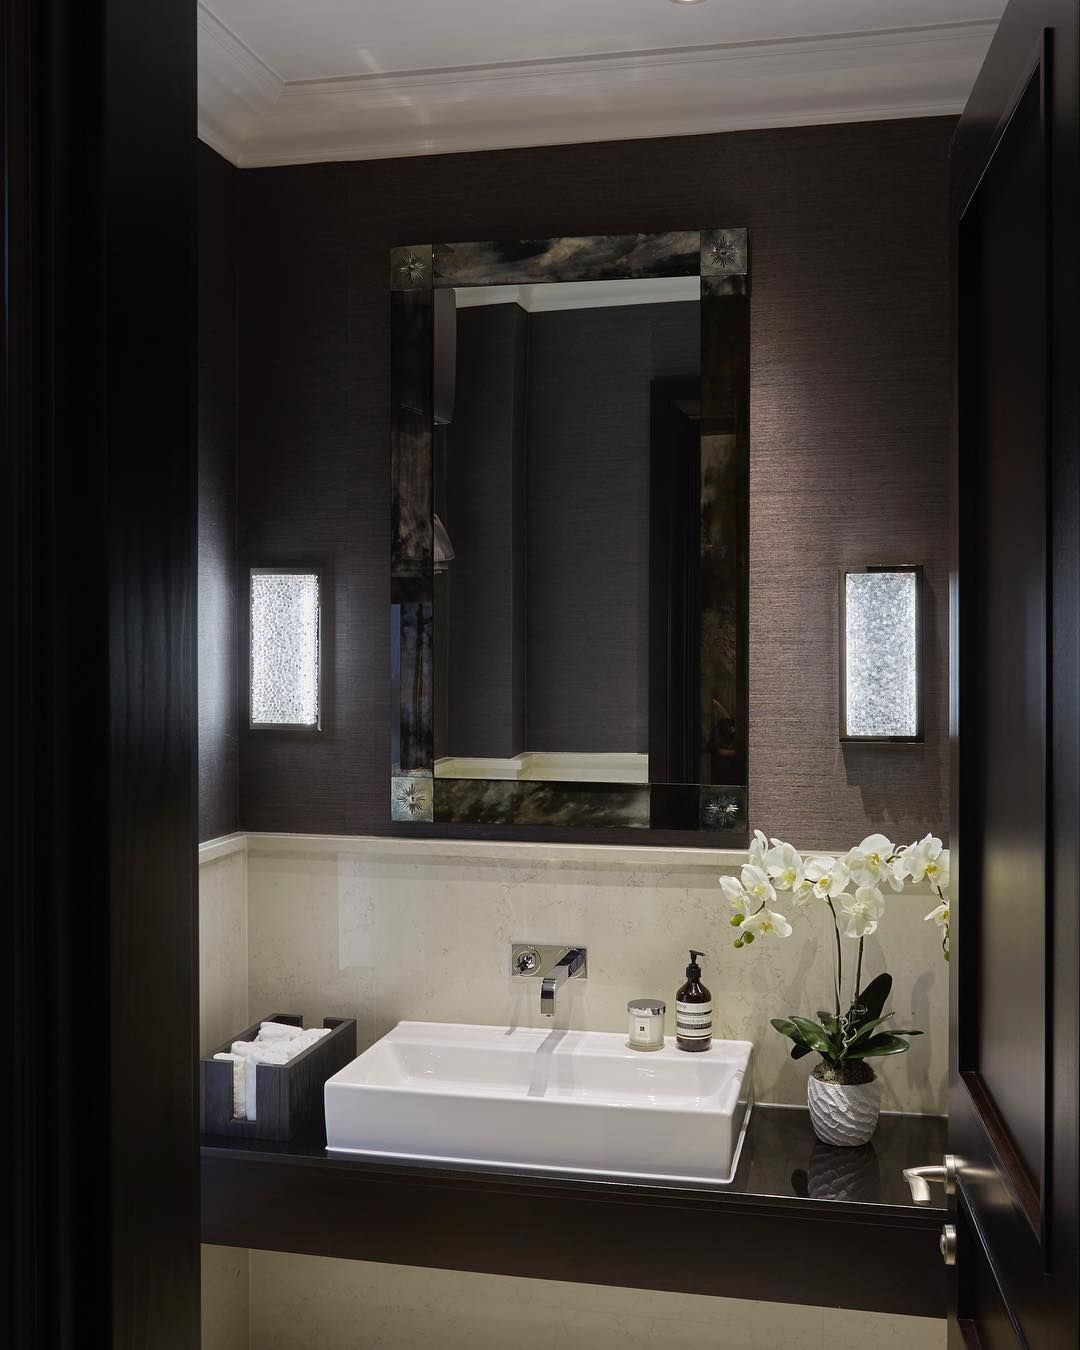 Guest bathroom with grasscloth wall covering and bespoke